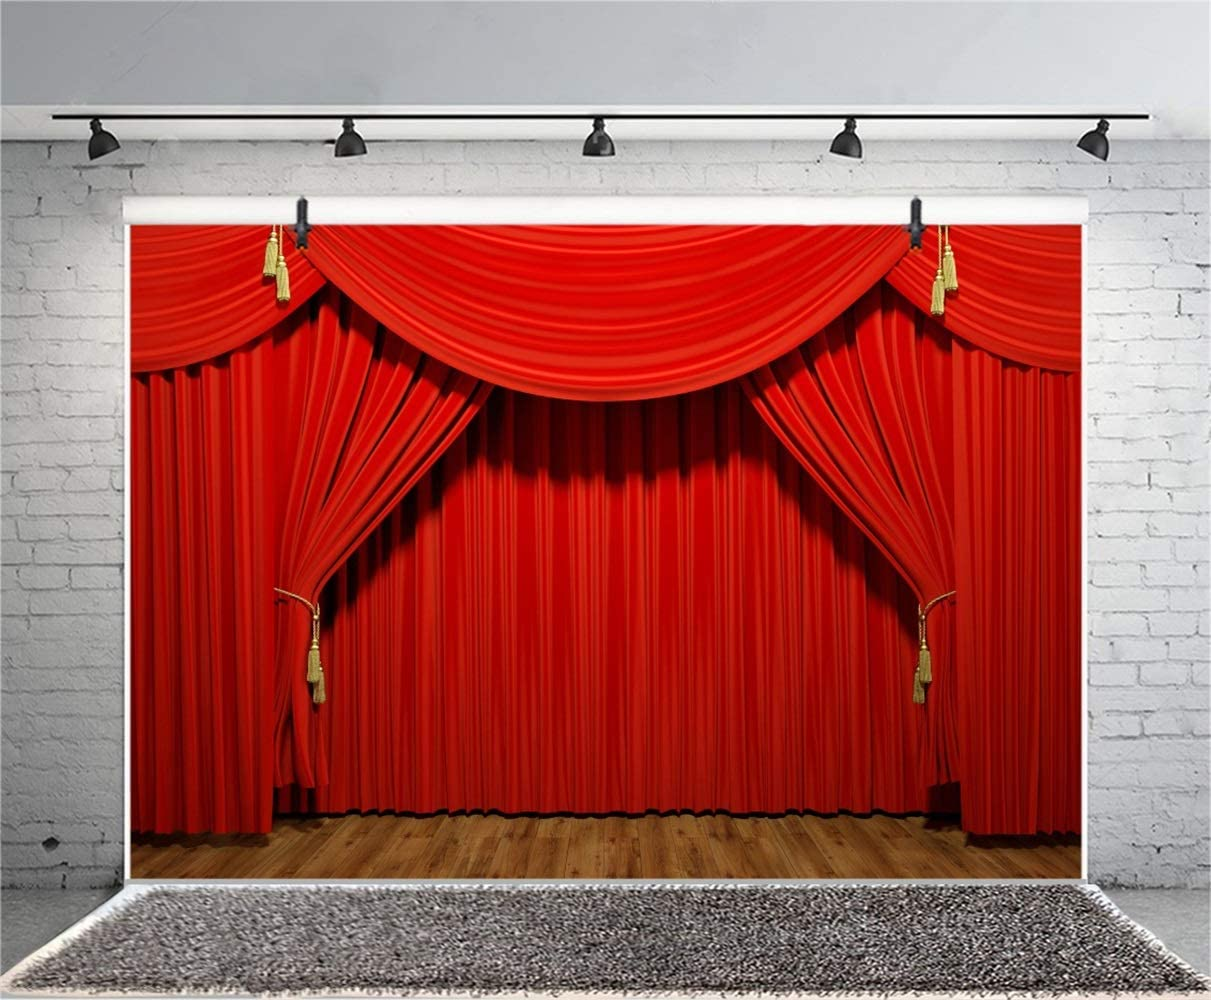 10x6.5ft Dark Wooden Stage Backdrop Polyester Faint Light Red Curtain Valance Rustic Grunge Wooden Floor Background Performance Show Award Ceremony Banner Talent Show Openning Ceremony Shoot